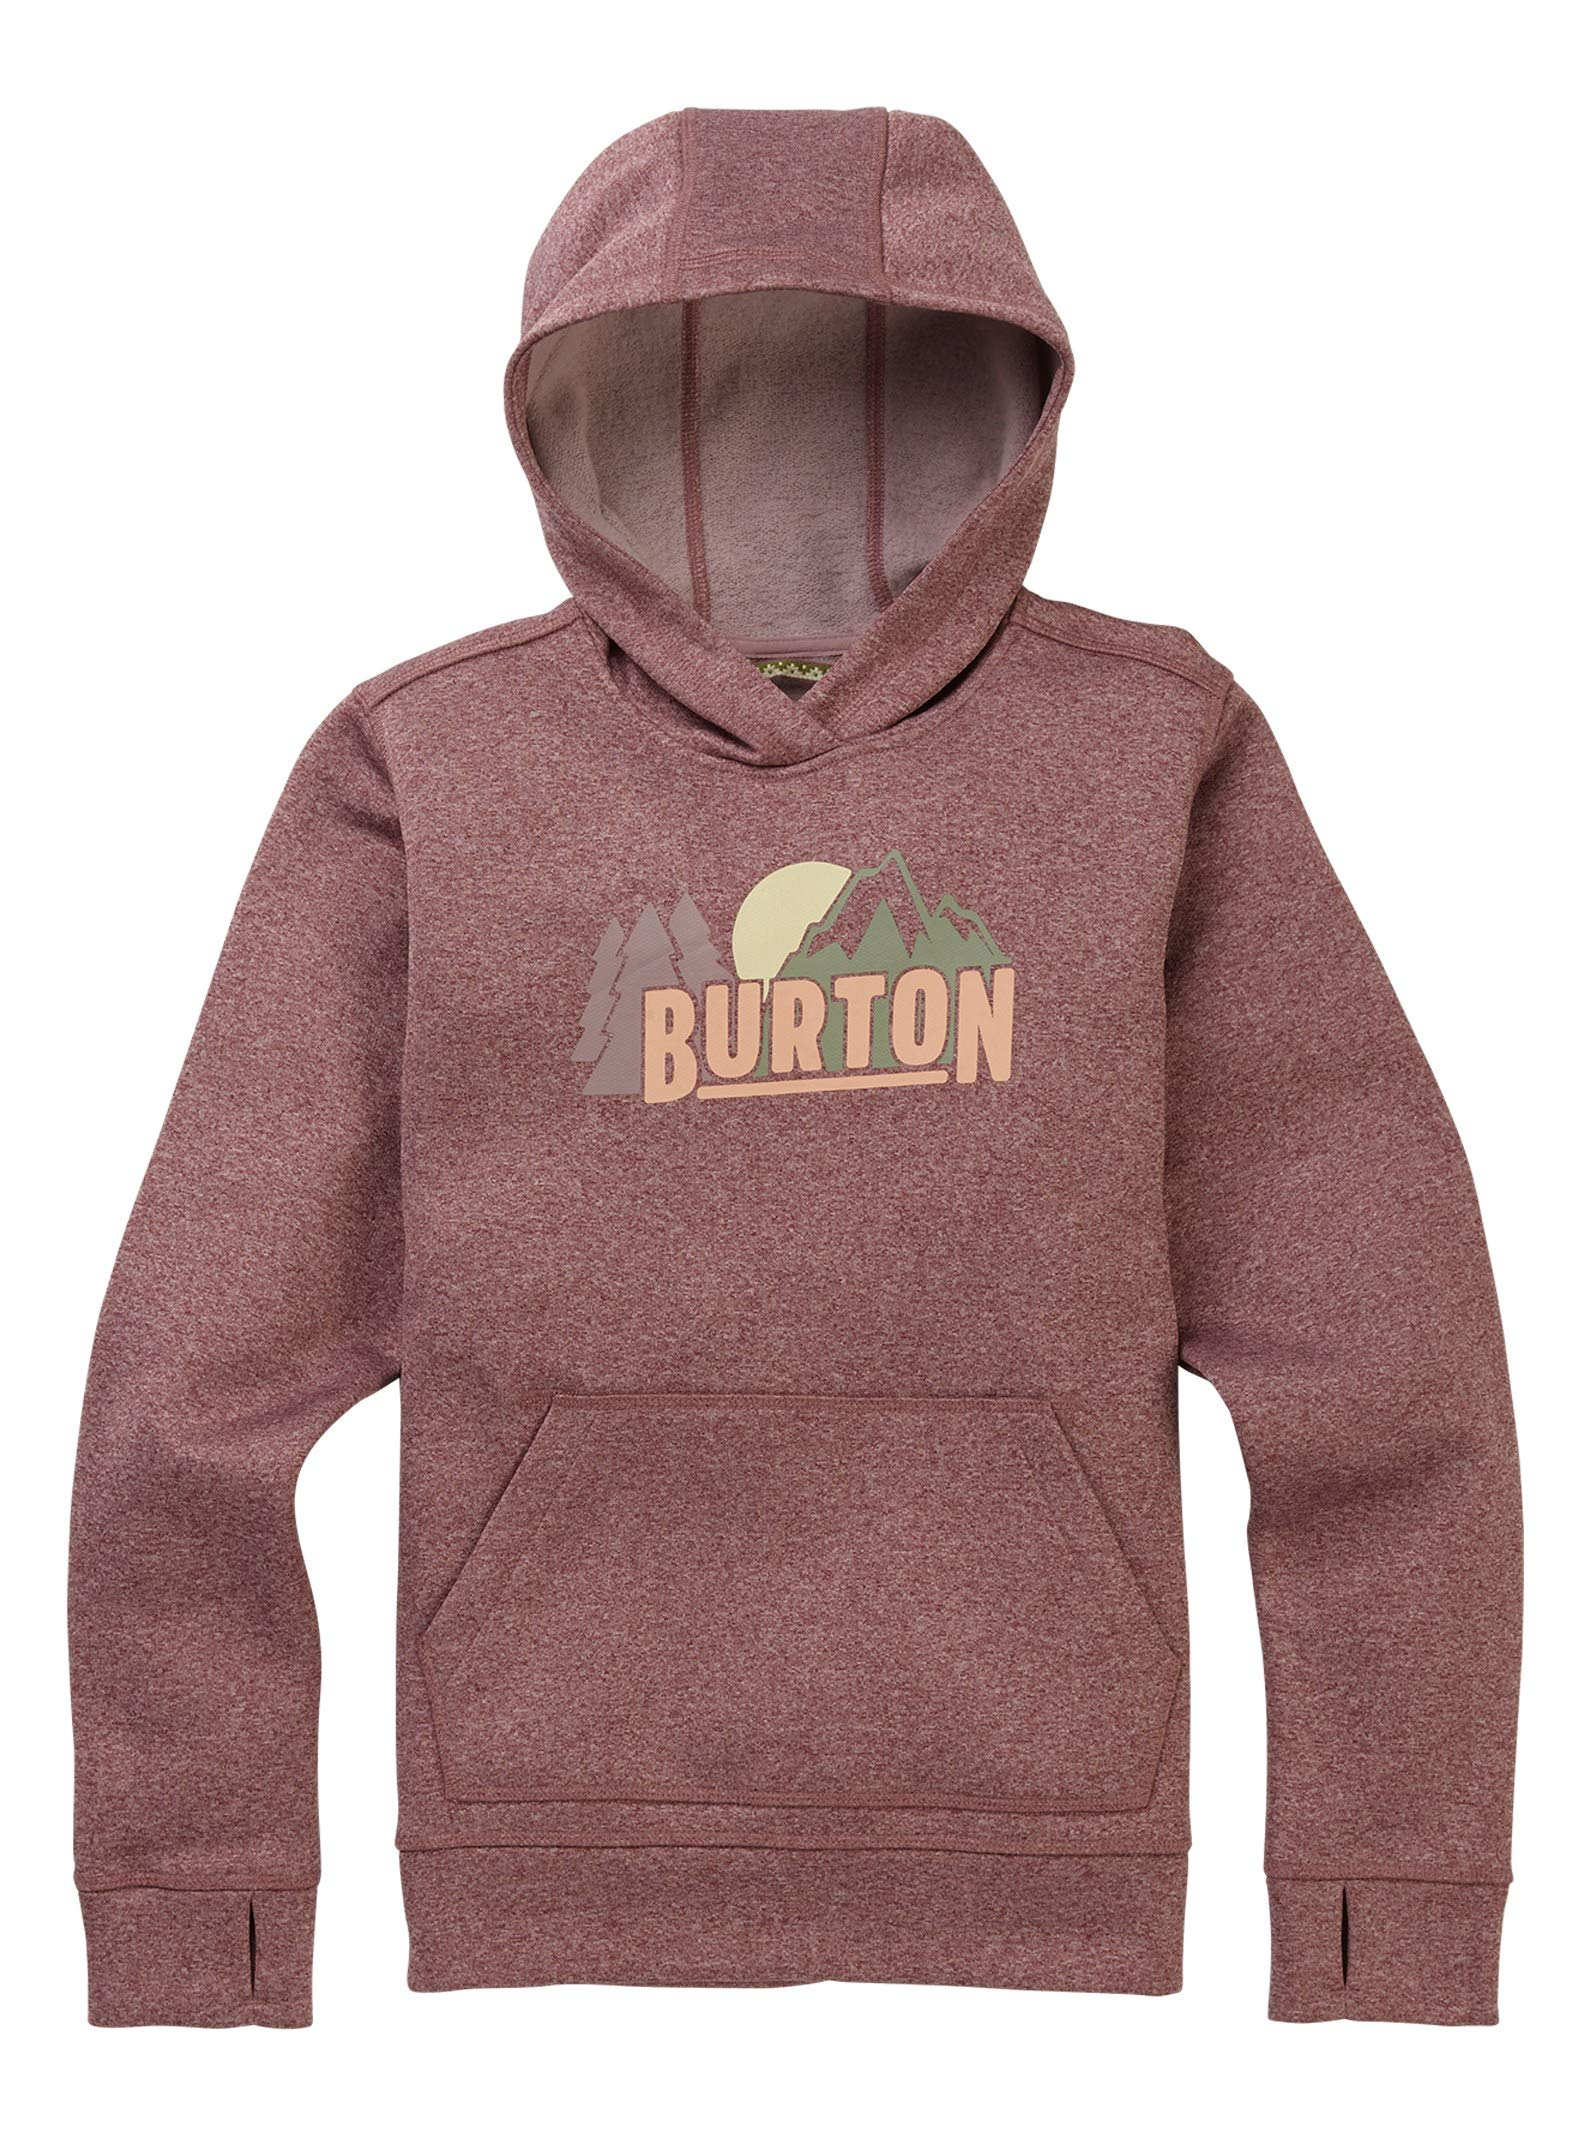 Burton Girls' Oak Pullover Hoodie, Flint Heather, Large by Burton